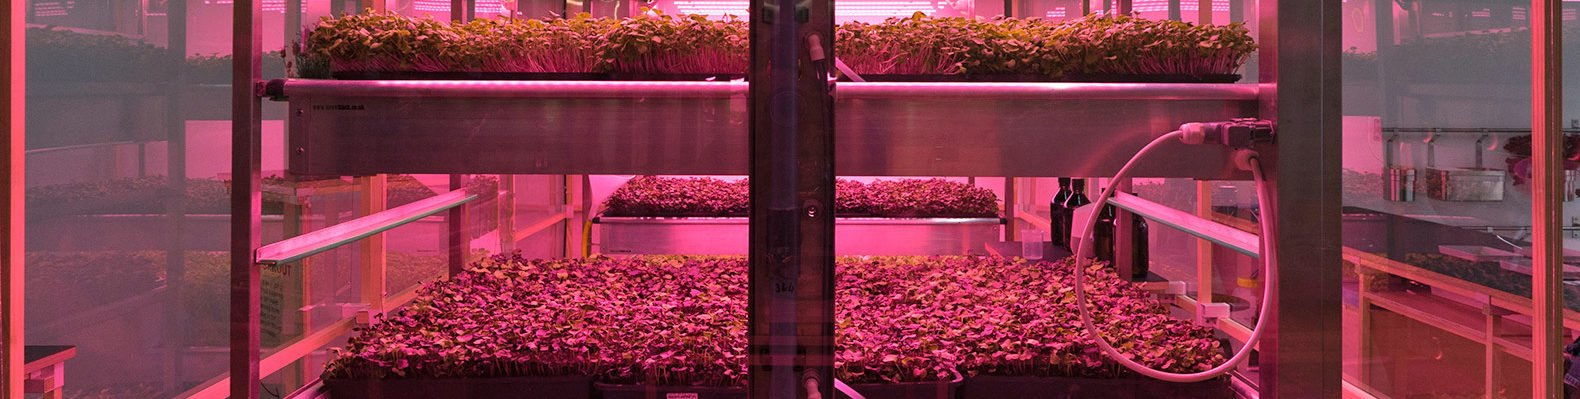 Shelves of green plants under a red light